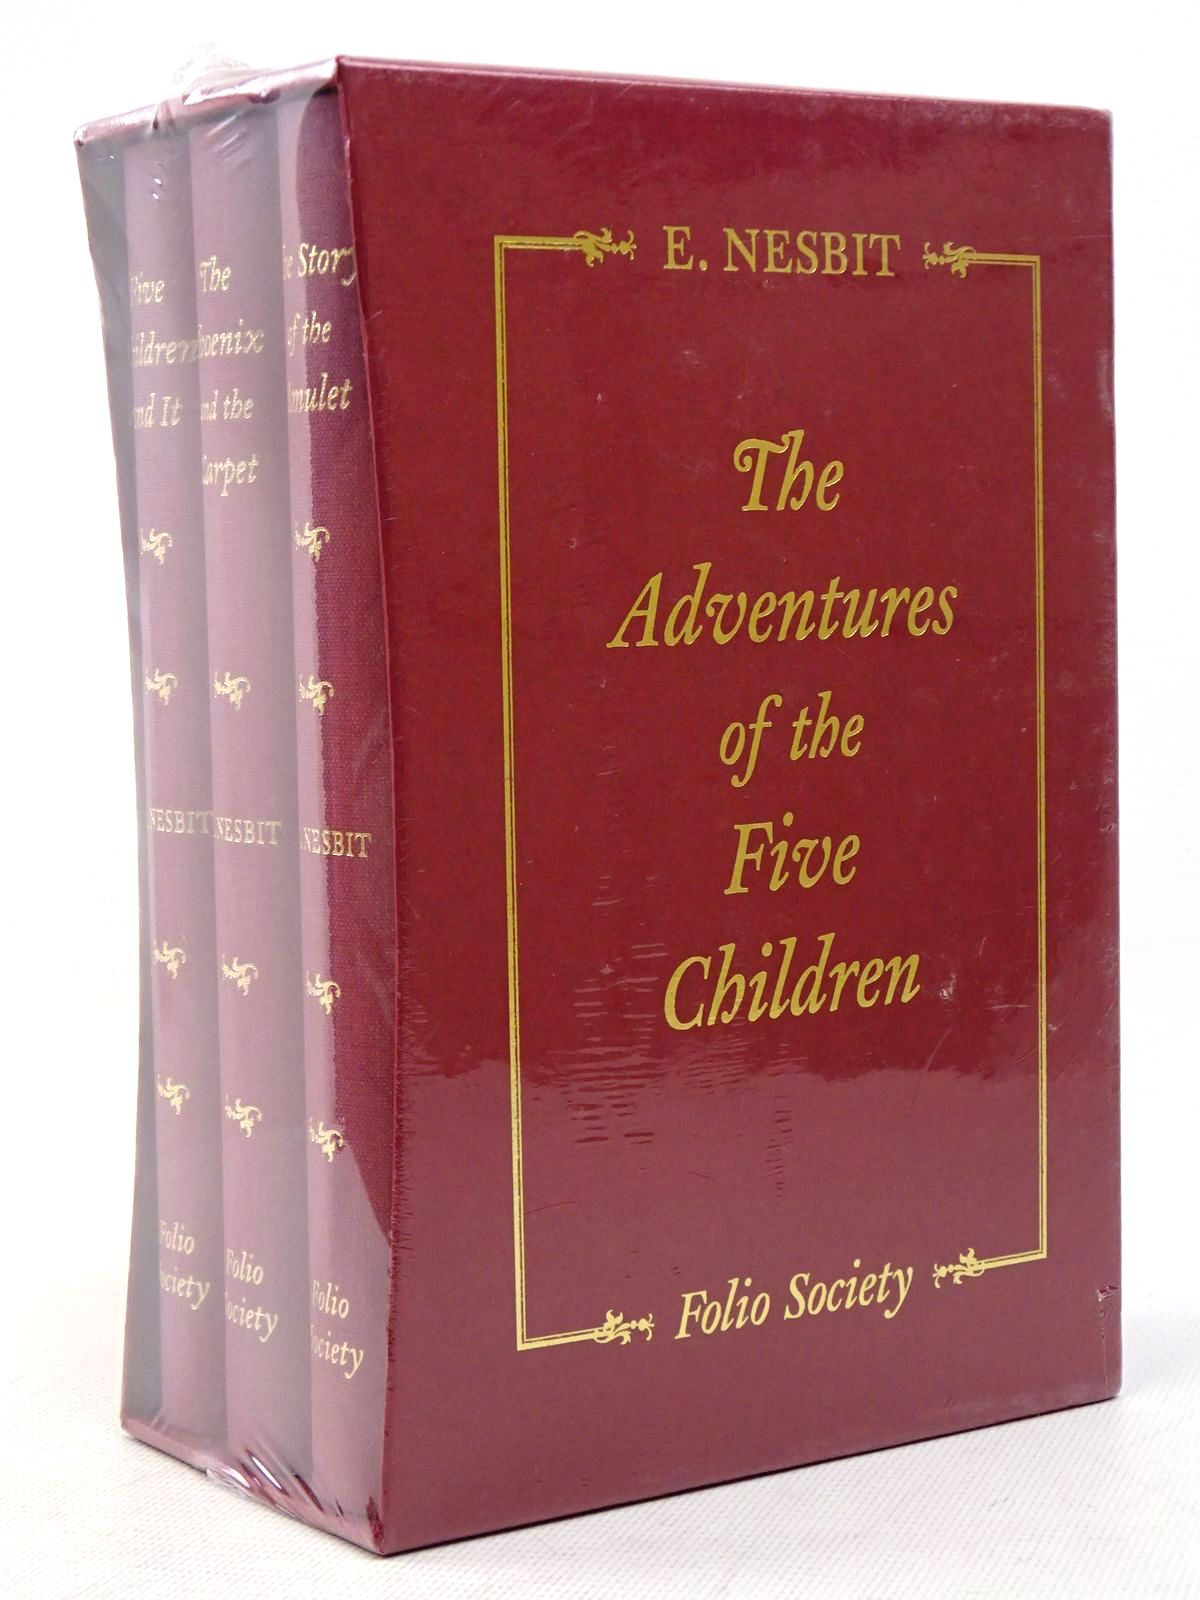 Photo of THE ADVENTURES OF THE FIVE CHILDREN (3 VOLUMES) written by Nesbit, E. illustrated by Millar, H.R. published by Folio Society (STOCK CODE: 1817155)  for sale by Stella & Rose's Books